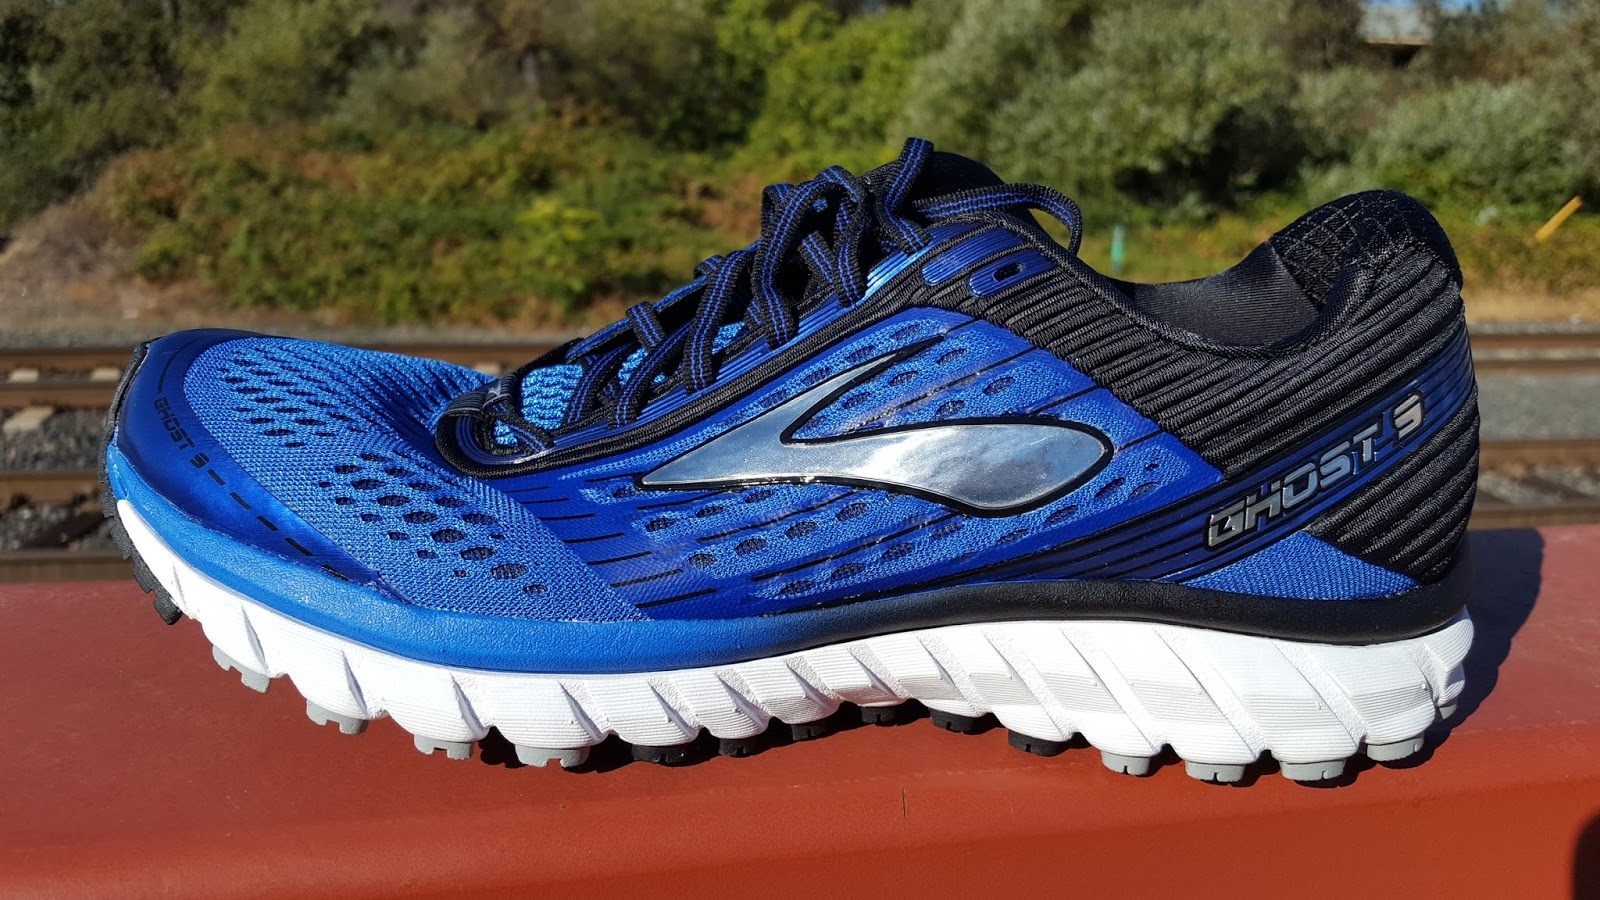 a7f86f0fde8 ... Brooks  Cushion Me series are soft and protective shoes that are great  for training and long runs. Let s get the basic specs out of the way. The Ghost  9 ...